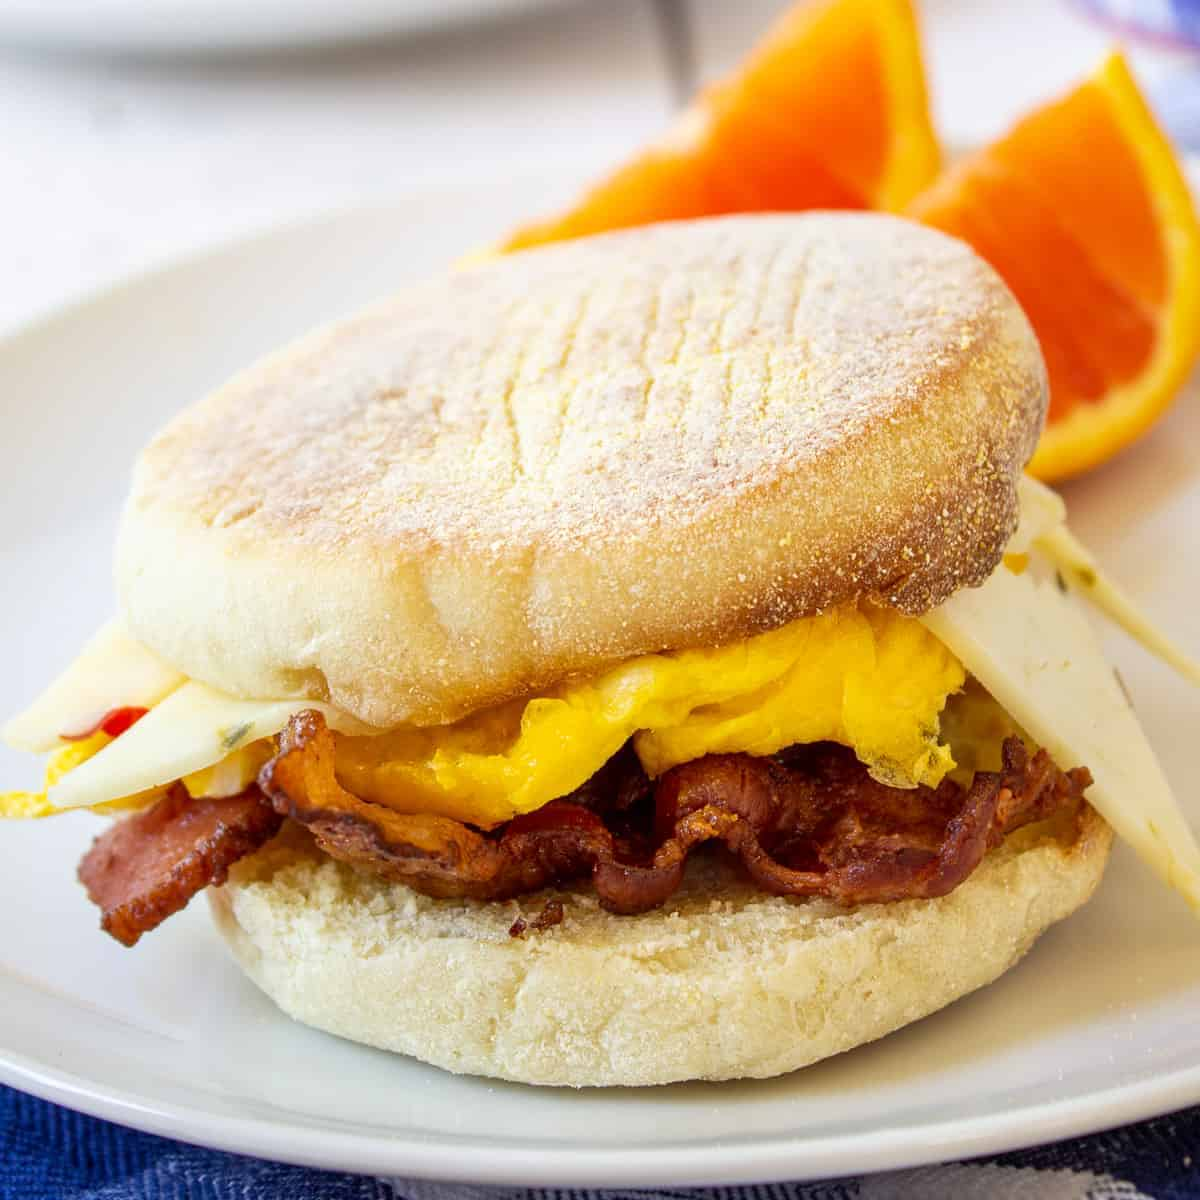 A breakfast sandwich filled with eggs, cheese and bacon.